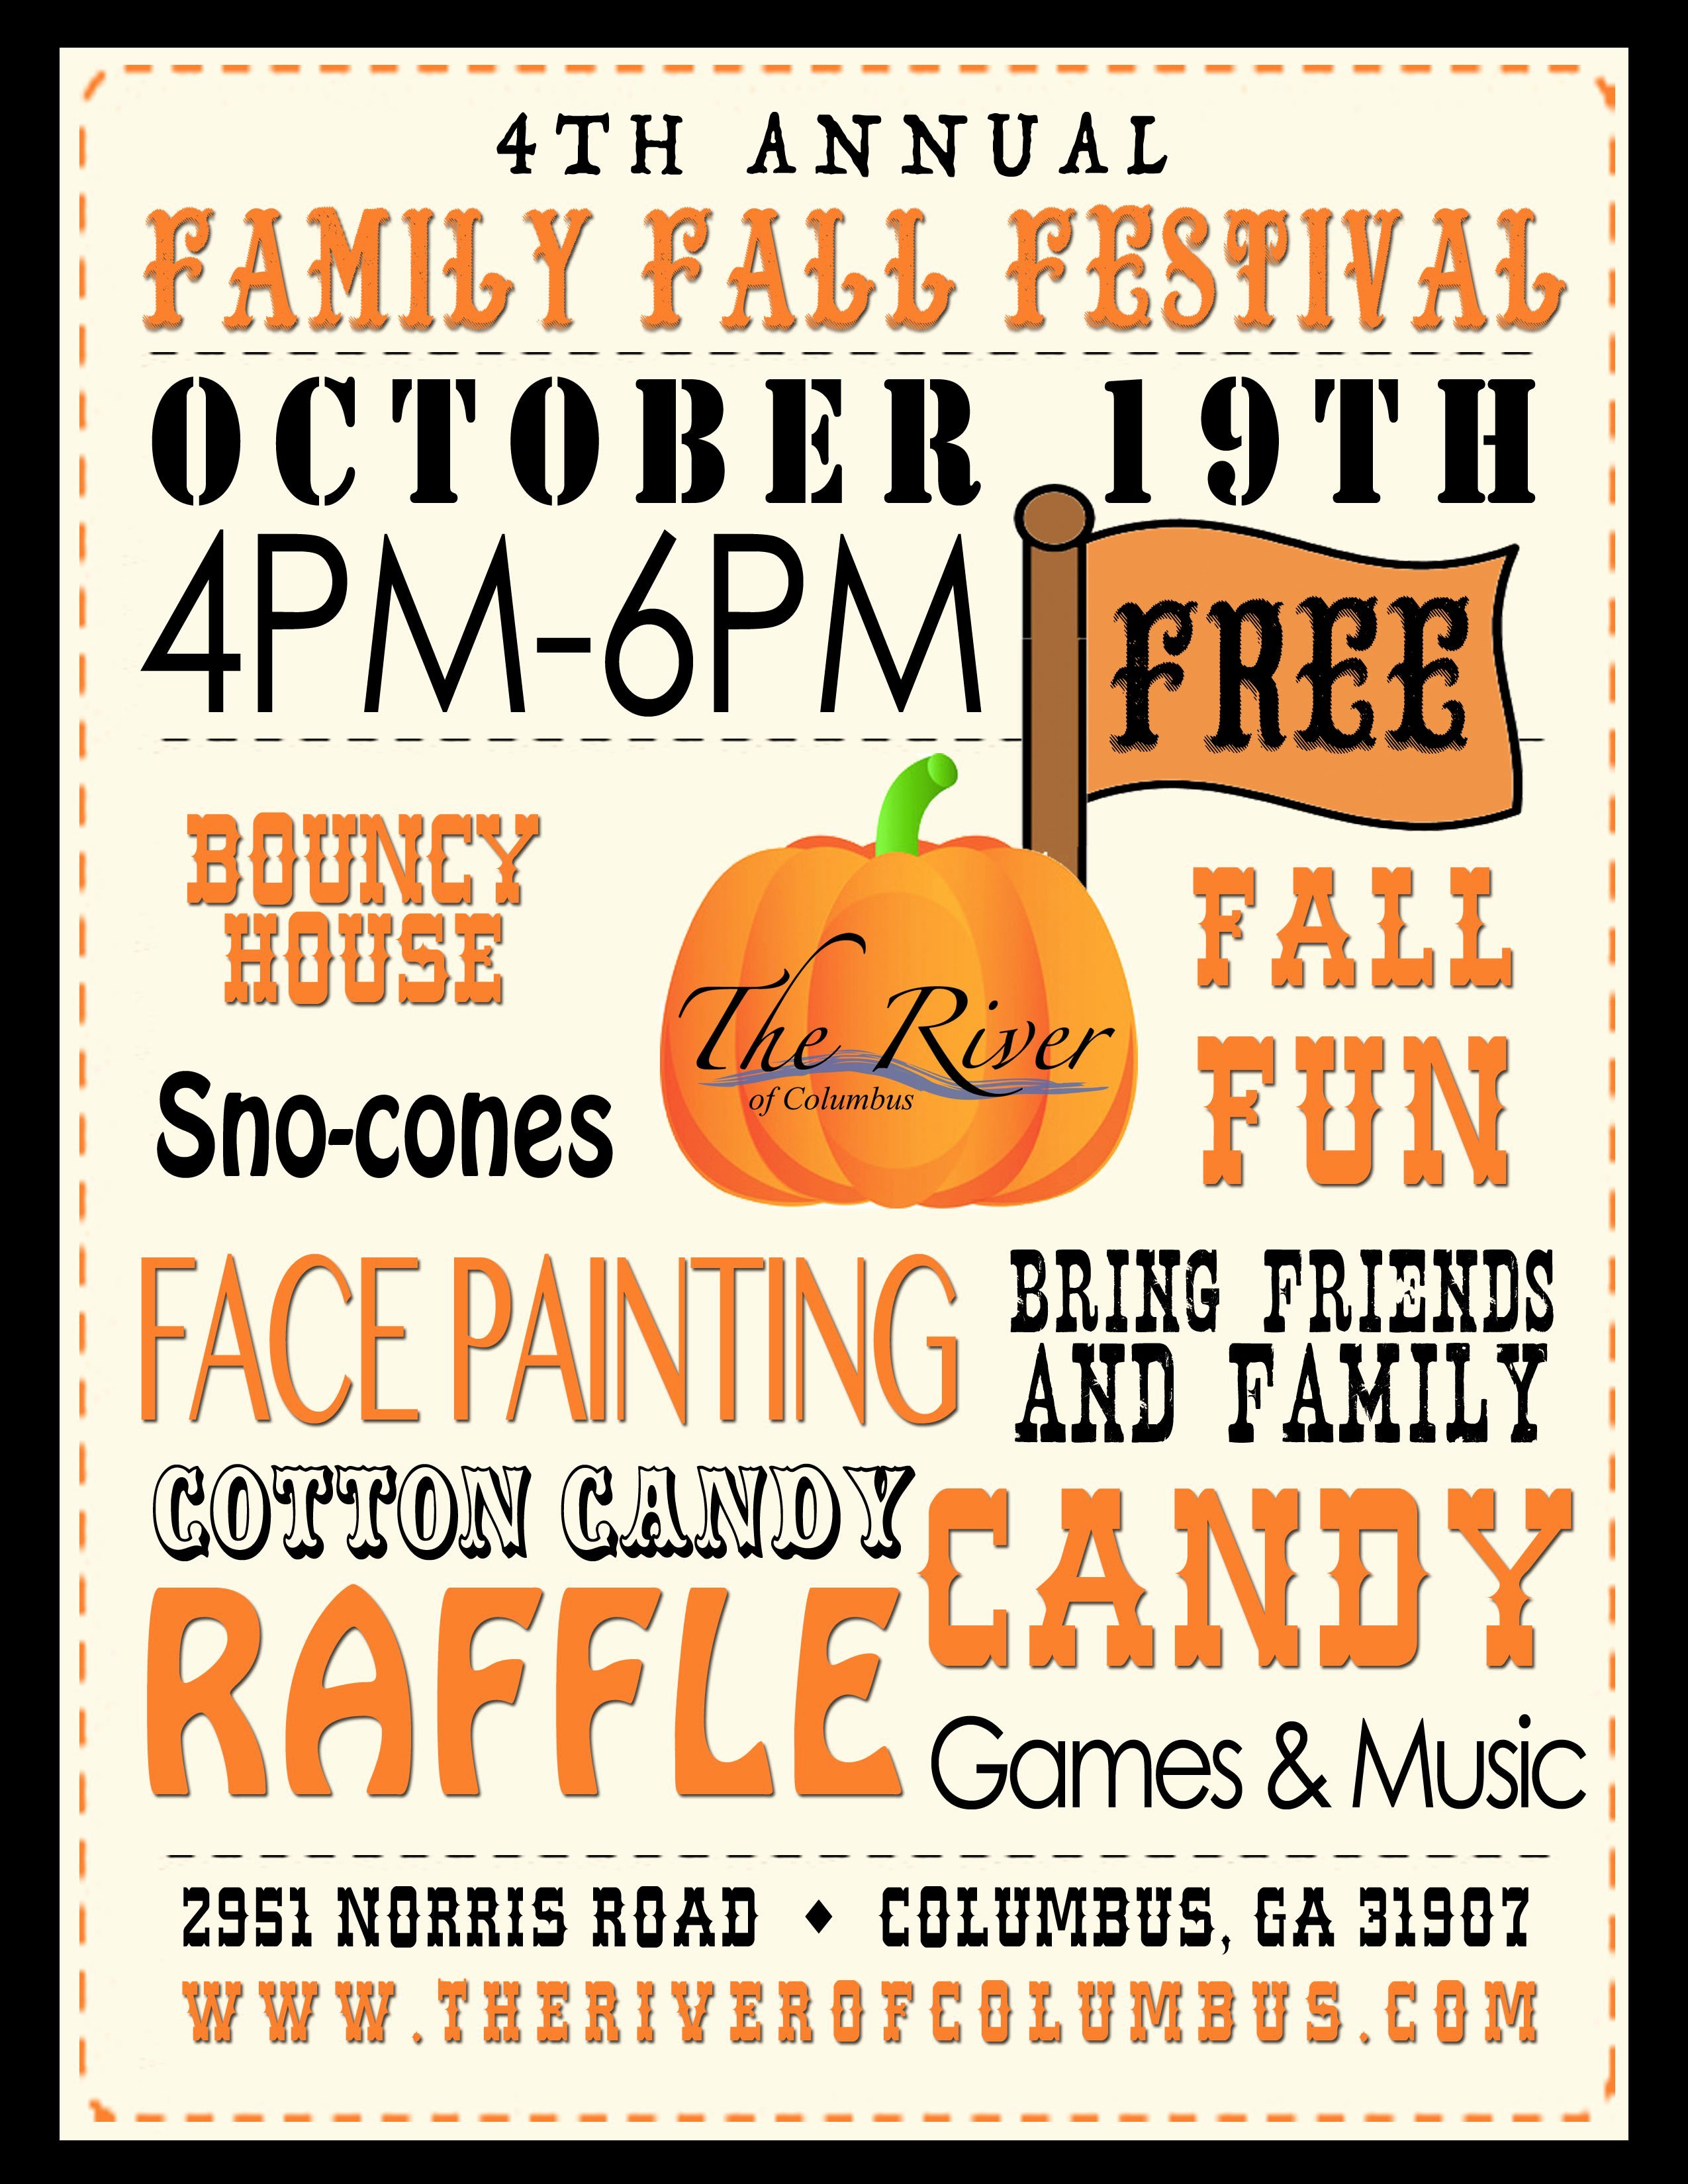 Fall Festival Flyer Template Best Of Halloween & Fall Festivals Archives Page 6 Of 47